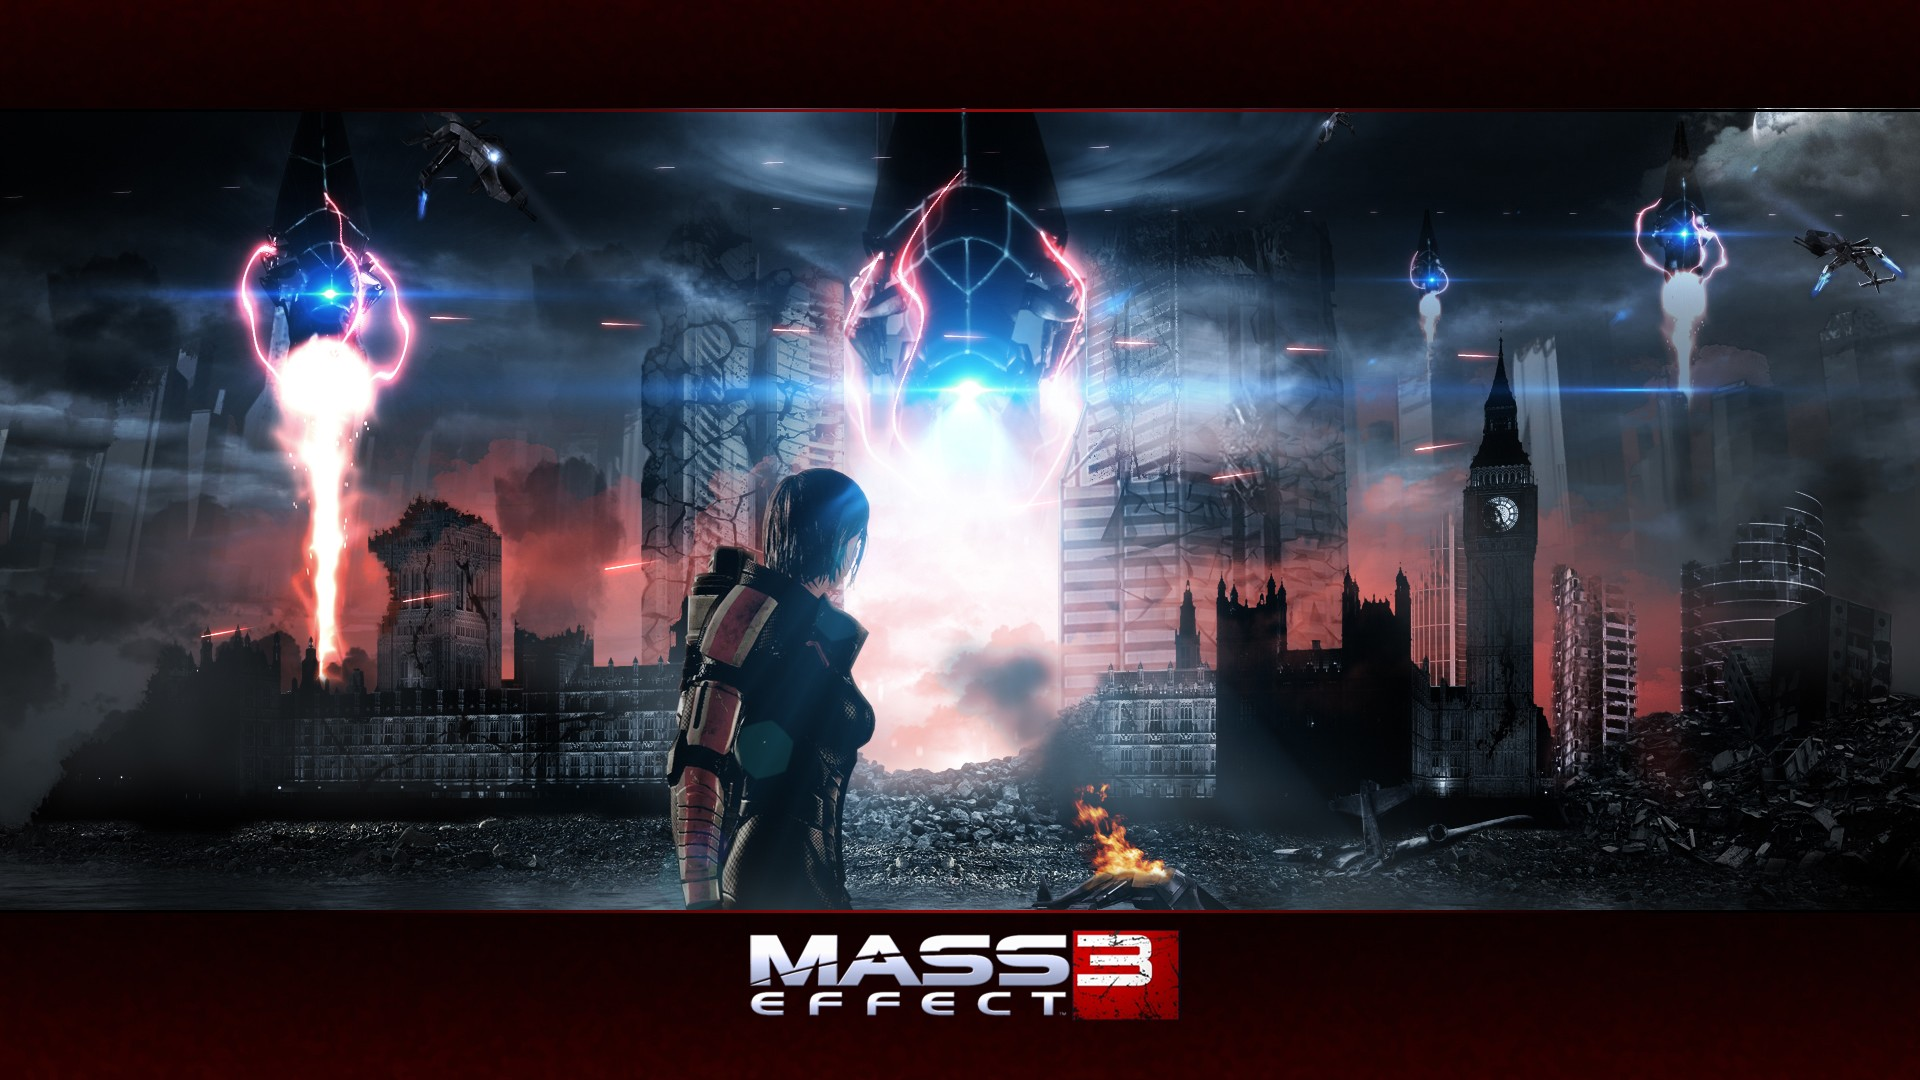 Screensaver of the game Mass Effect 3